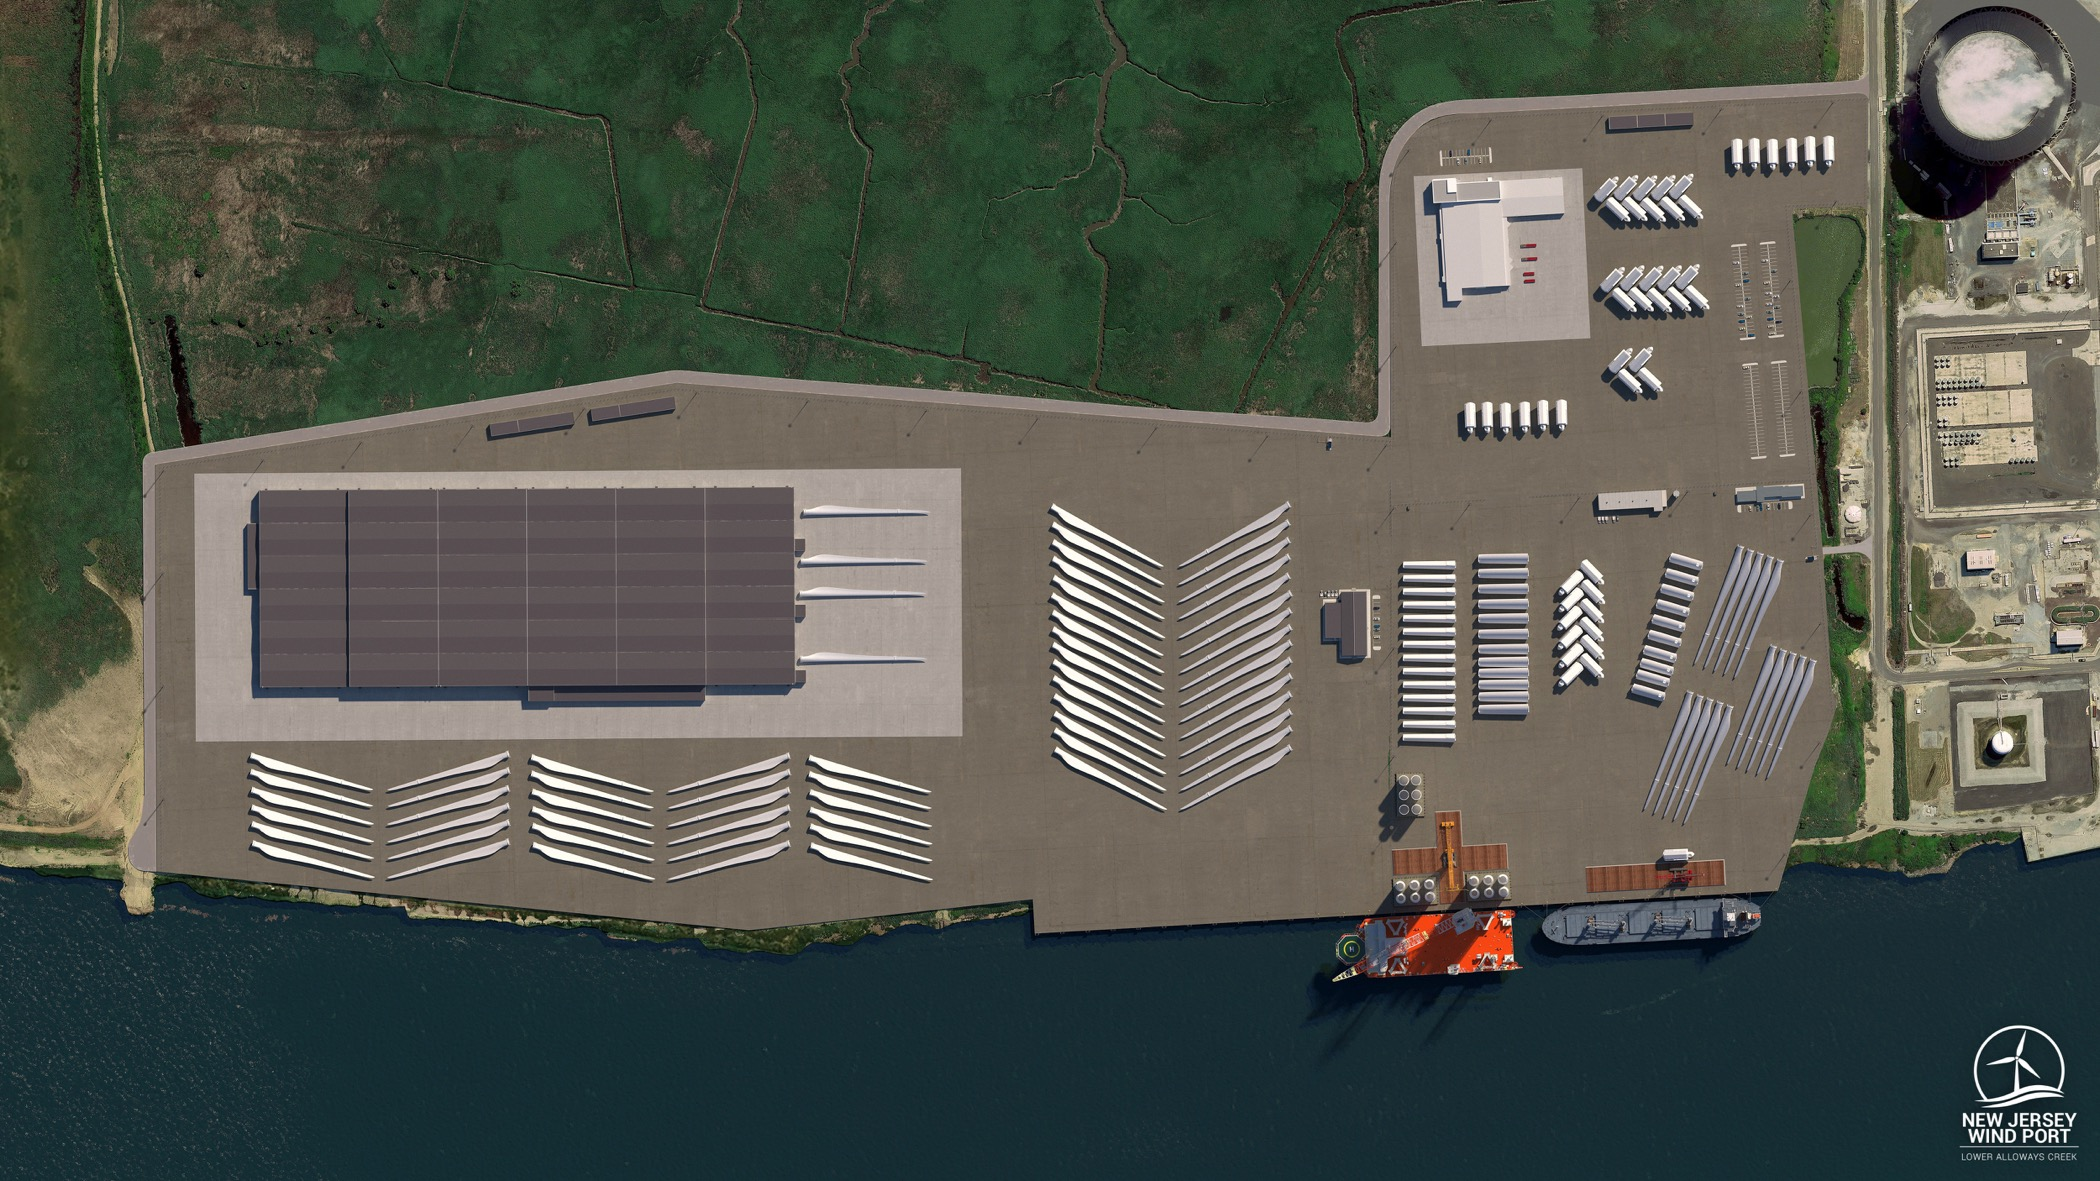 A rendering shows an overhead view of the planned 30-acre marshalling port for the New Jersey Wind Port on Artificial Island in Lower Alloways Township and 130+ acres of adjacent manufacturing space.